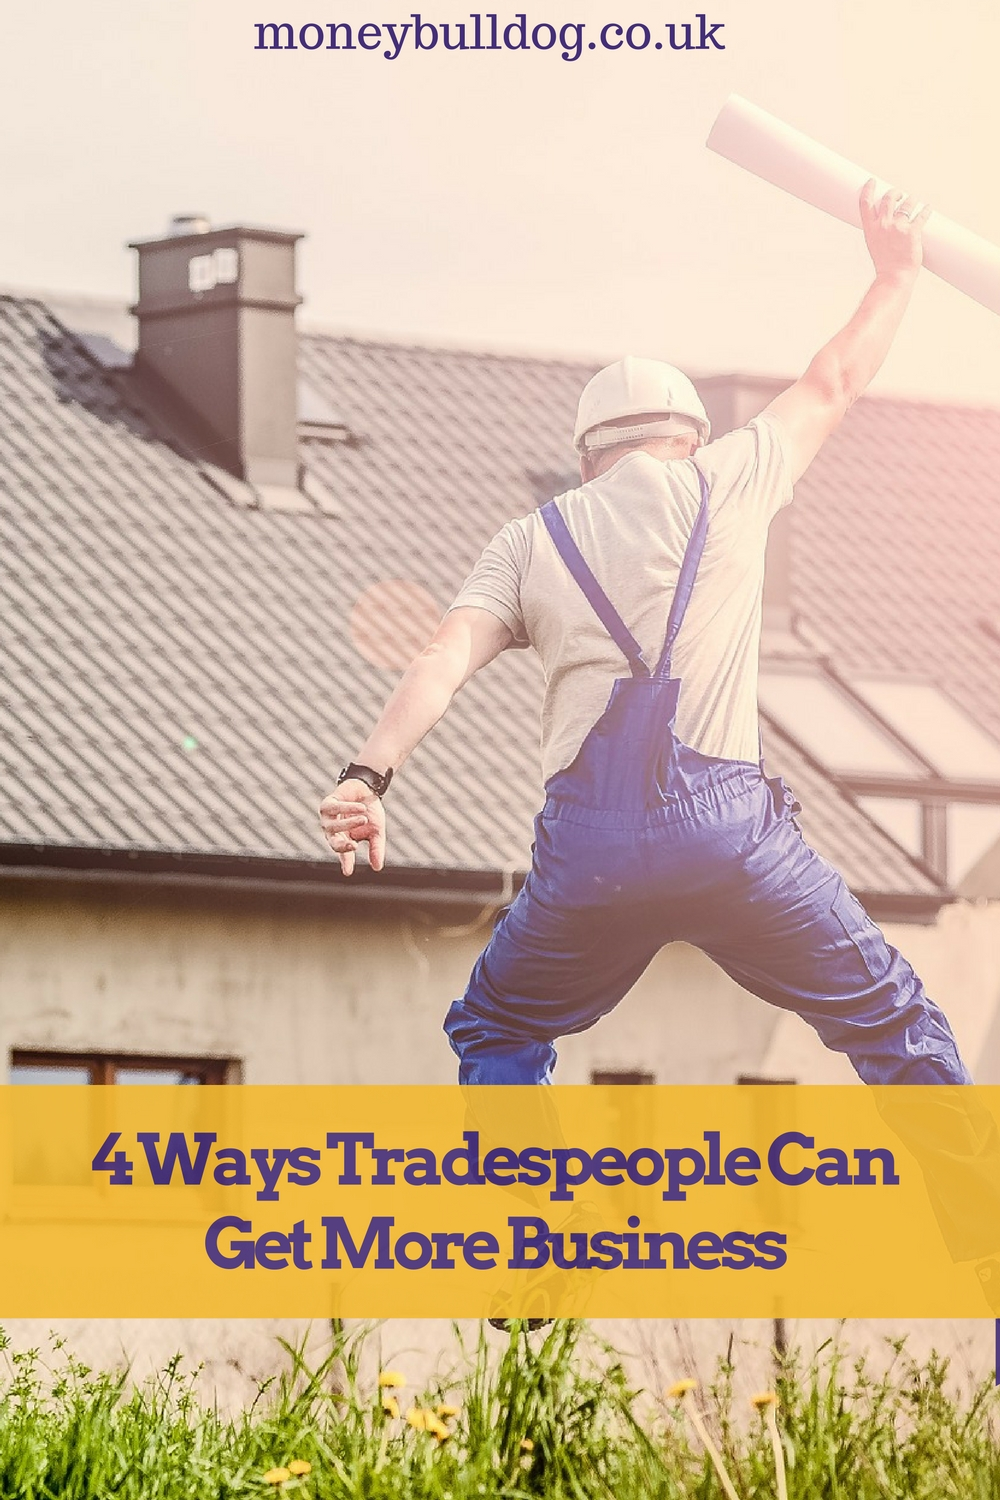 4 Ways Tradespeople Can Get More Business